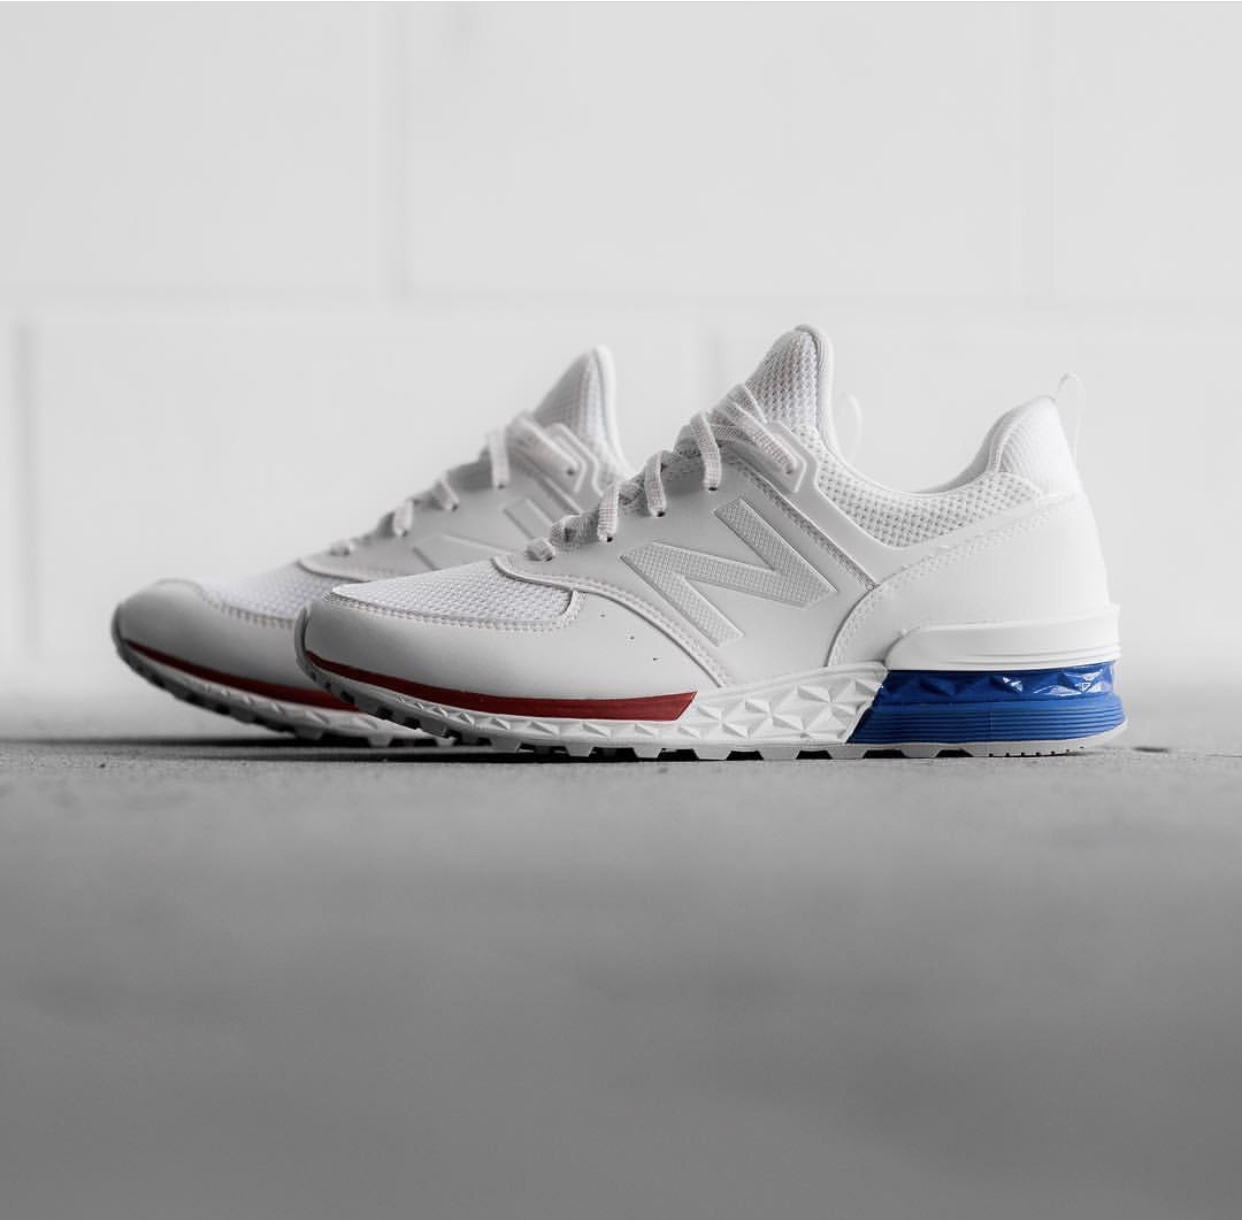 Check Out This Clean New Balance 574